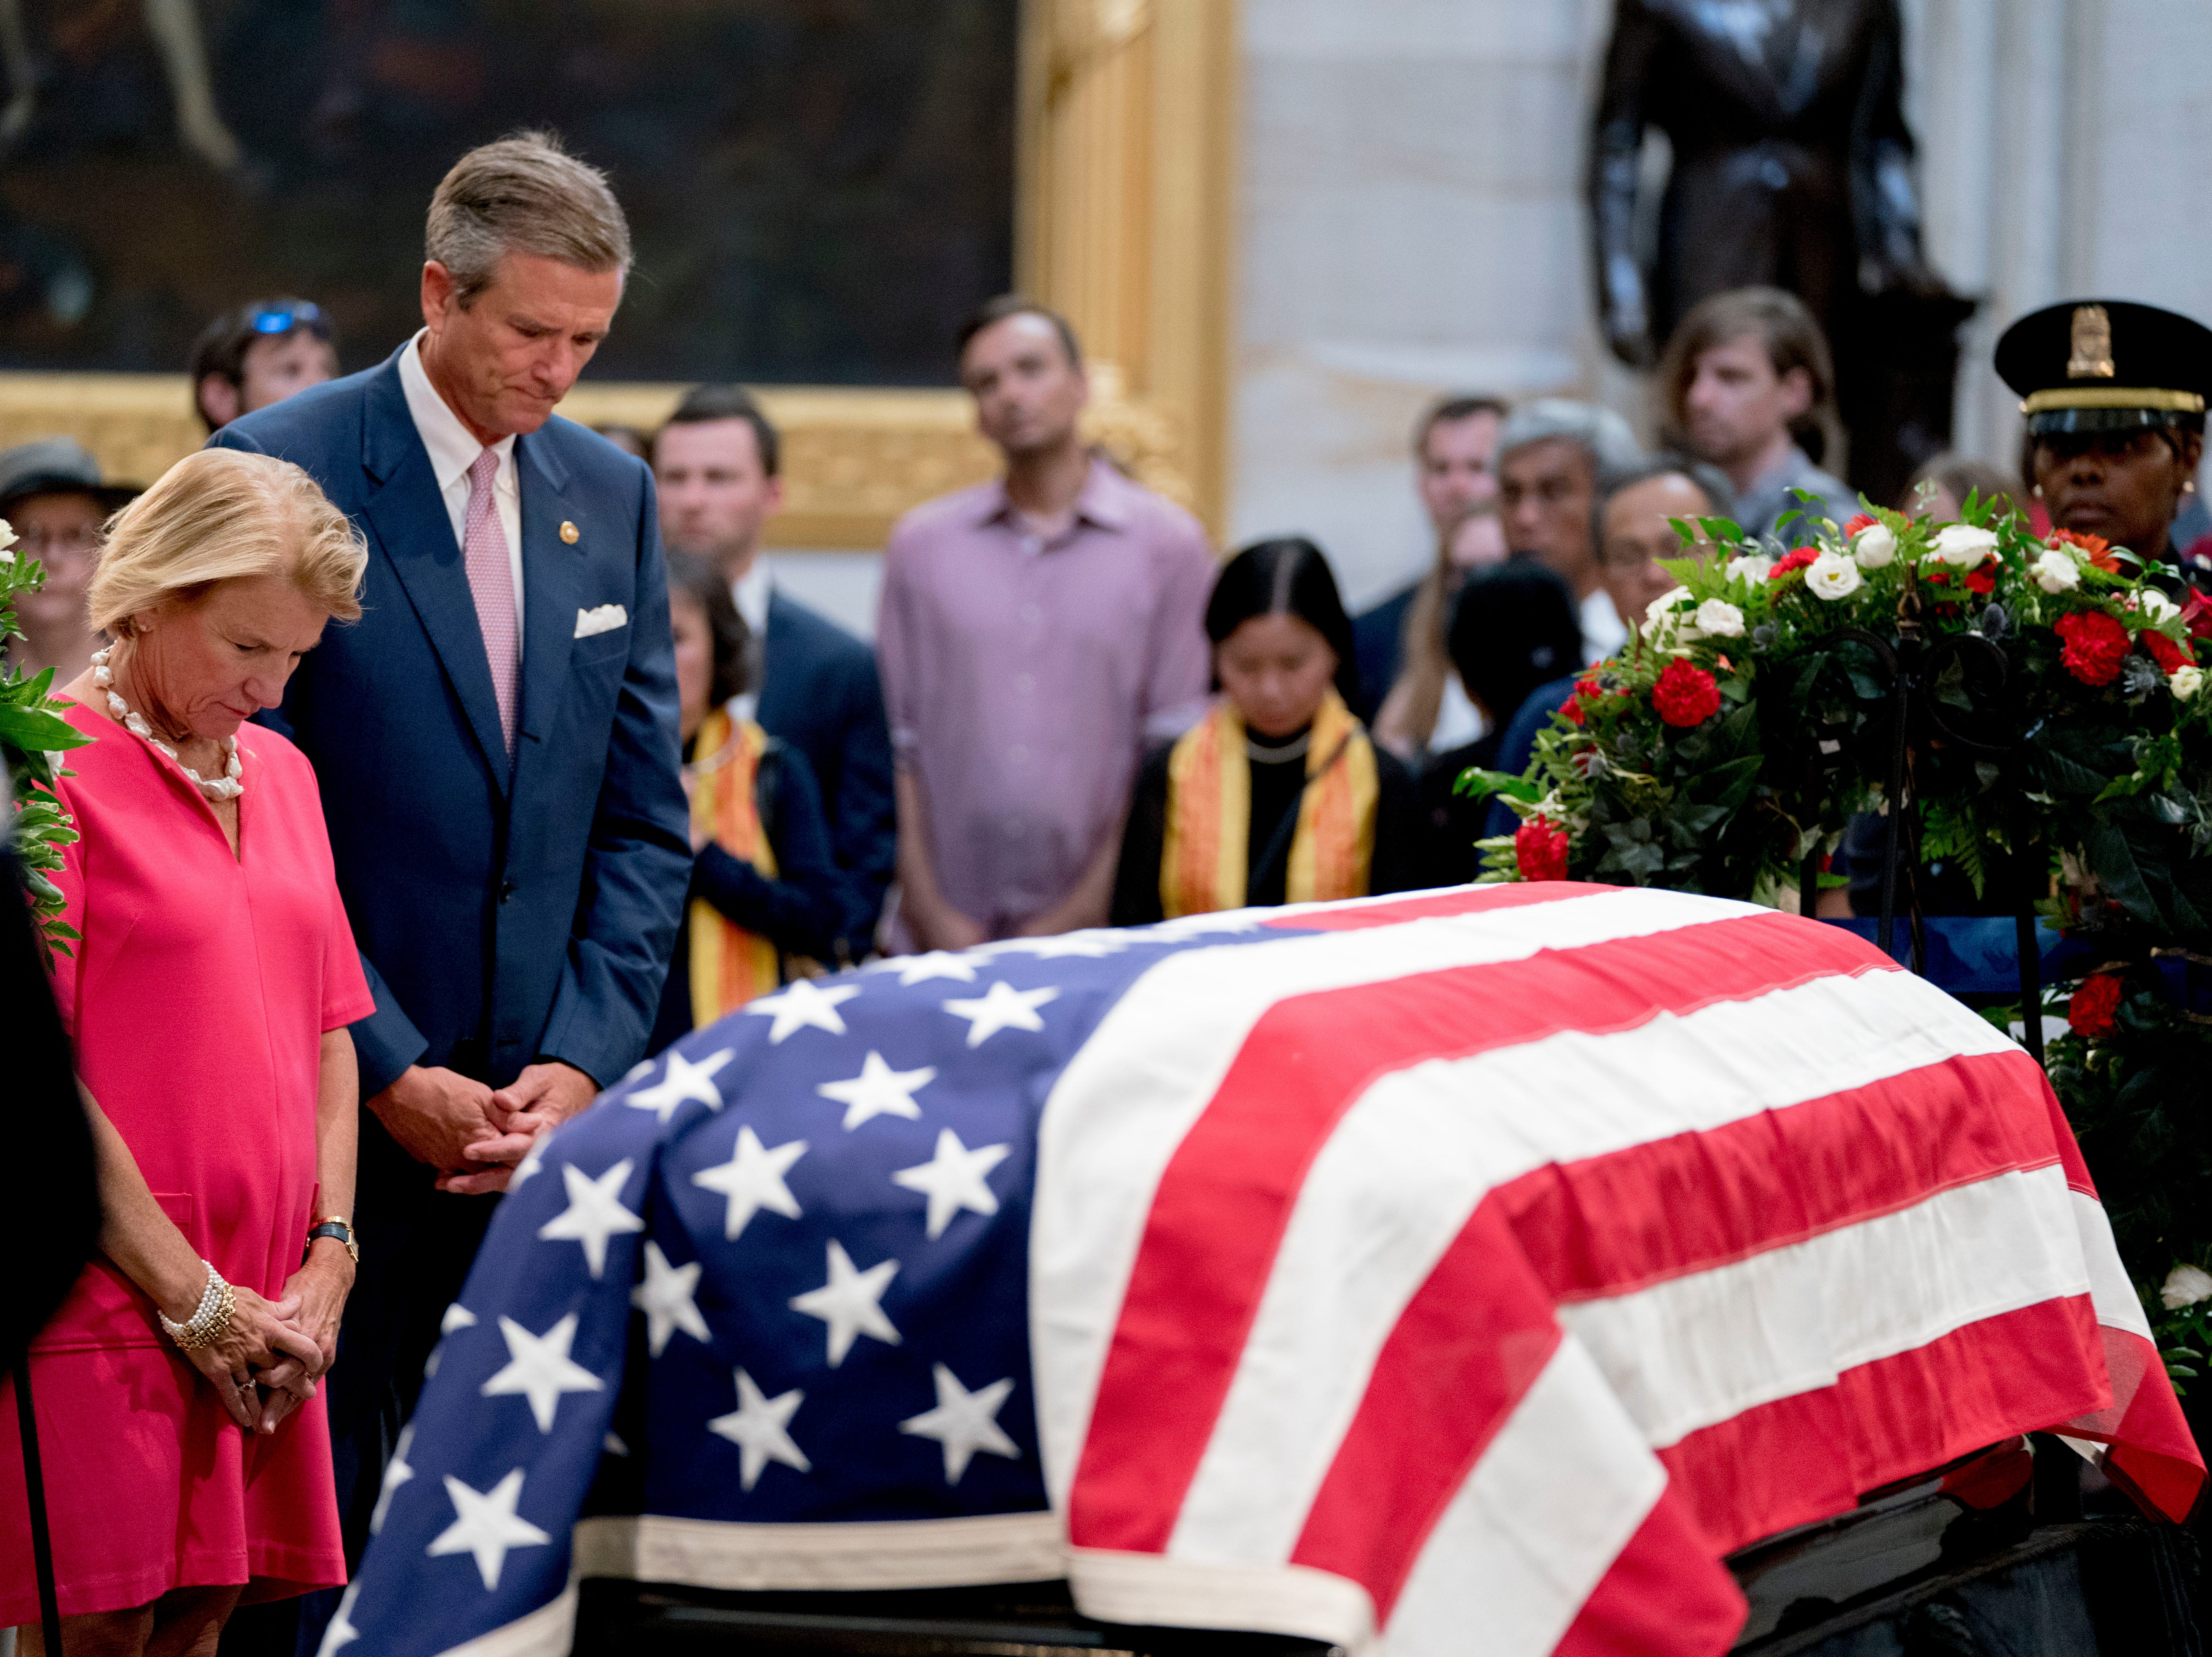 Sen. Shelley Moore Capito, R-W.Va., left, and her husband Charles Capito pay their respects to Sen. John McCain, R-Ariz., as he lies in state in the Rotunda of the U.S. Capitol, Friday, Aug. 31, 2018, in Washington. (AP Photo/Andrew Harnik)